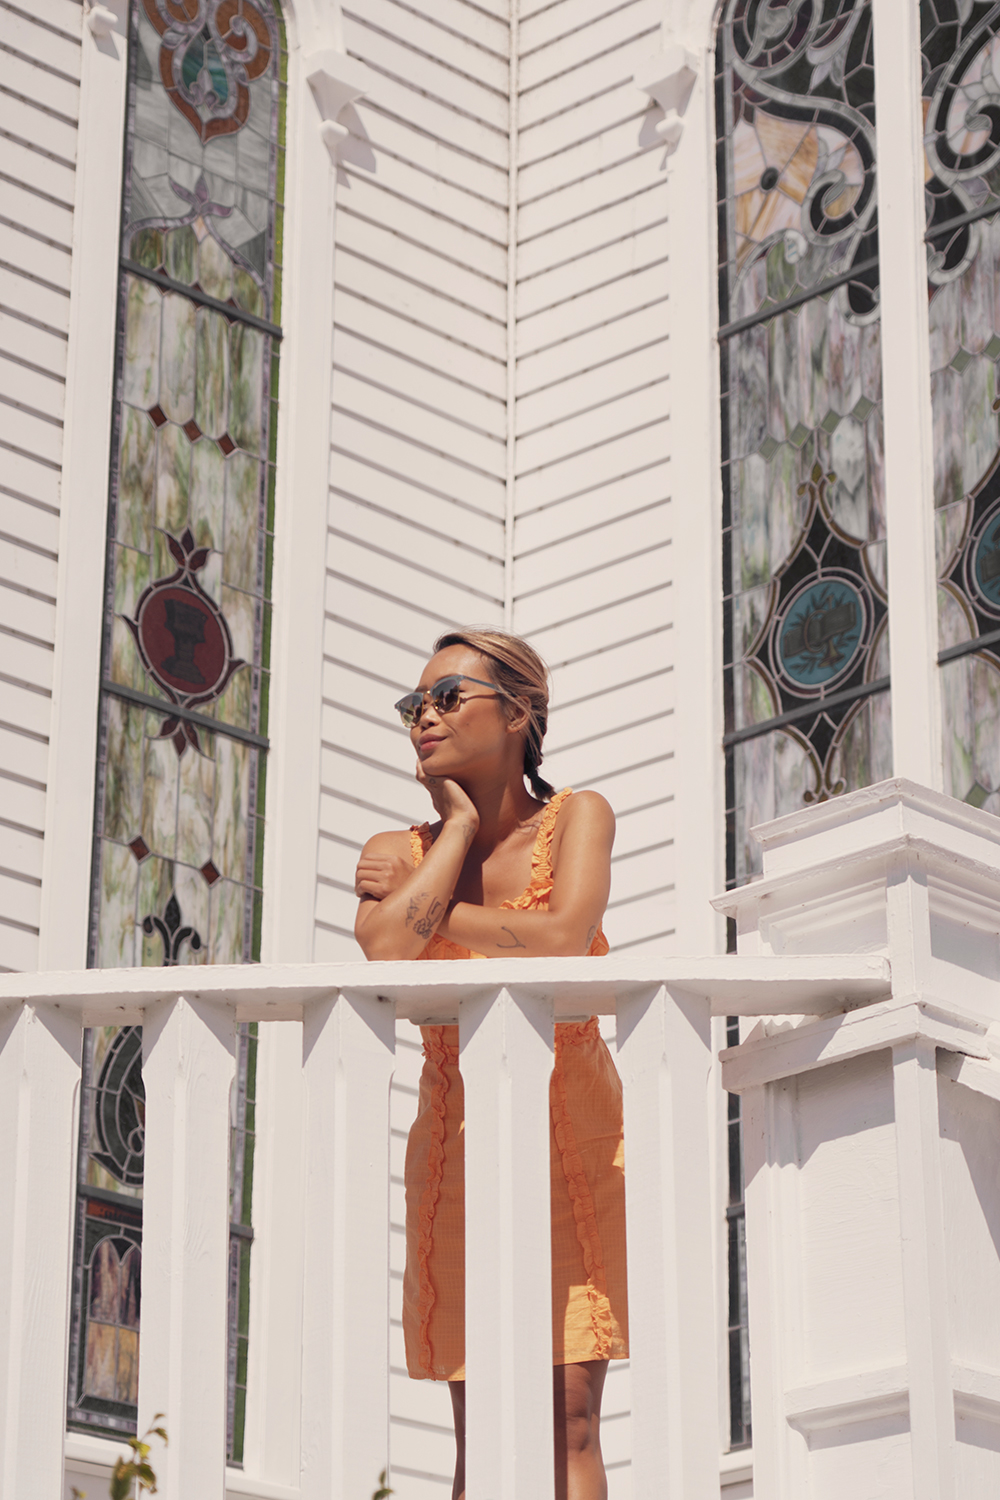 19mackinacisland-michigan-stannes-church-travel-style-ootd